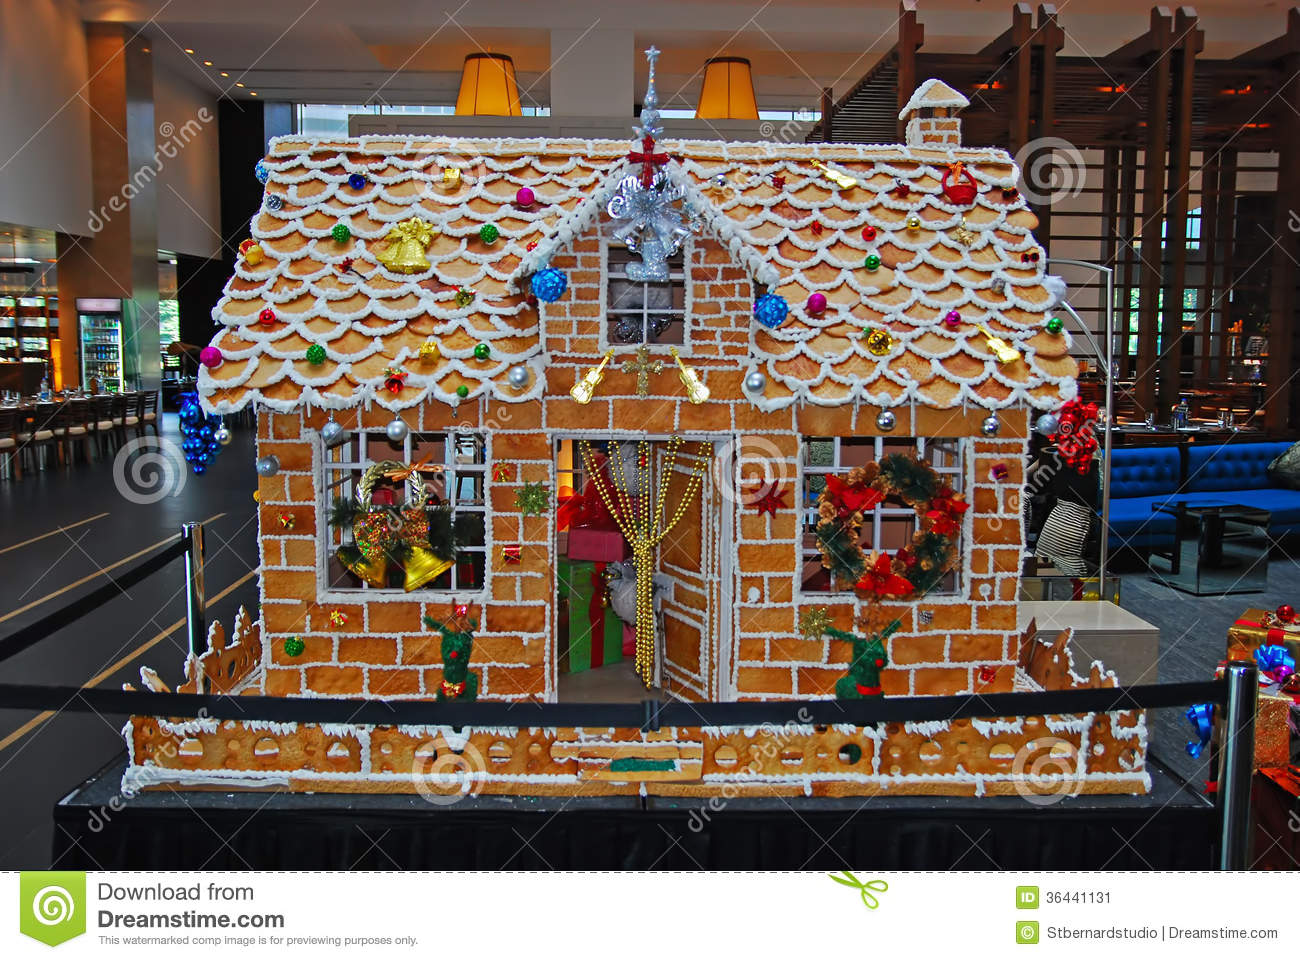 Giant Ginger Bread House During Christmas Season Stock